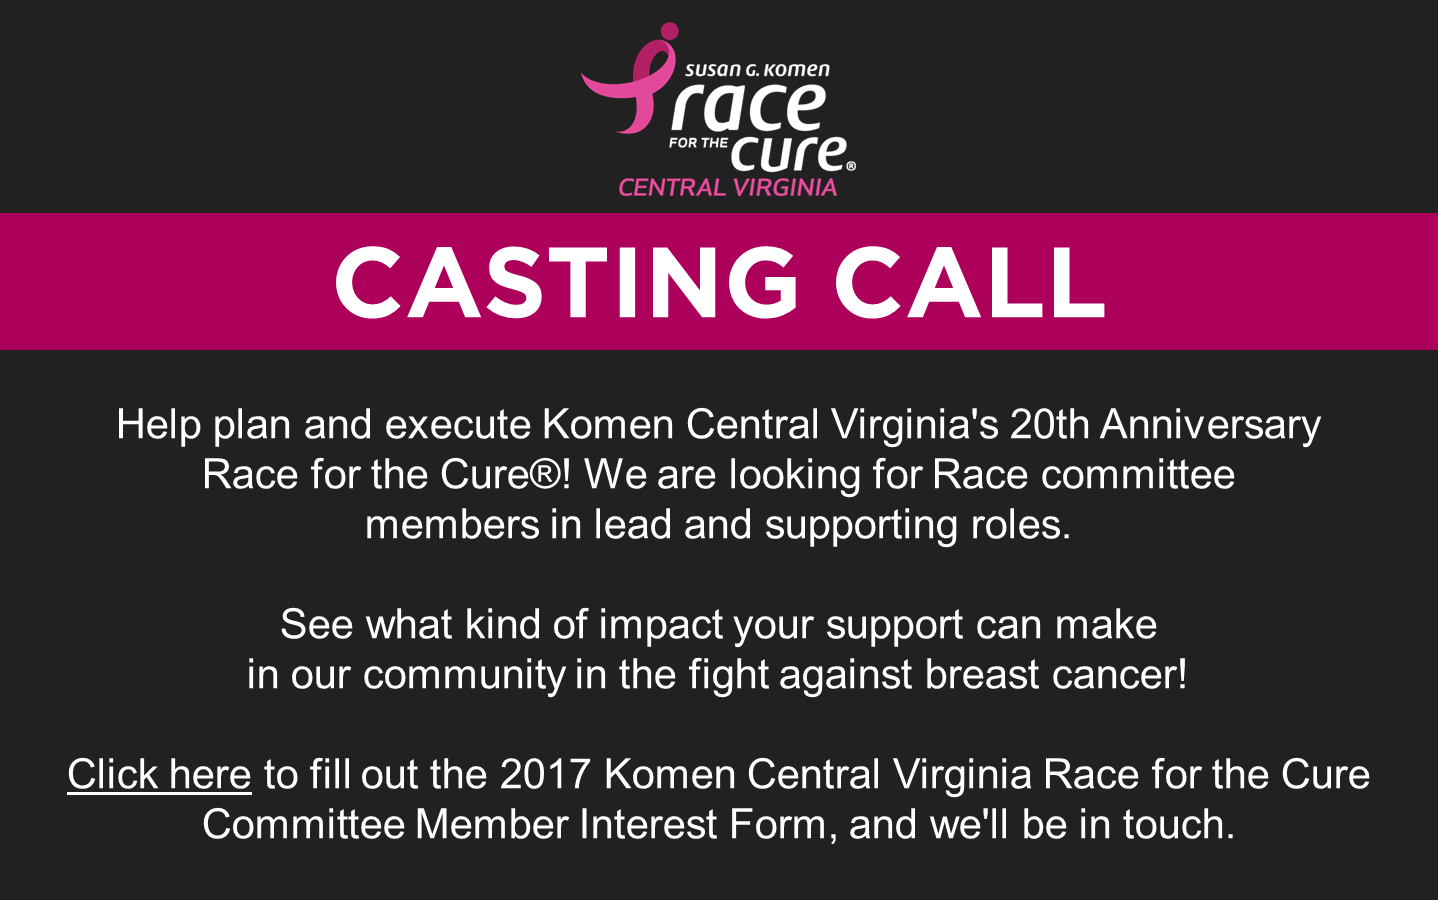 2017 Race Casting Call